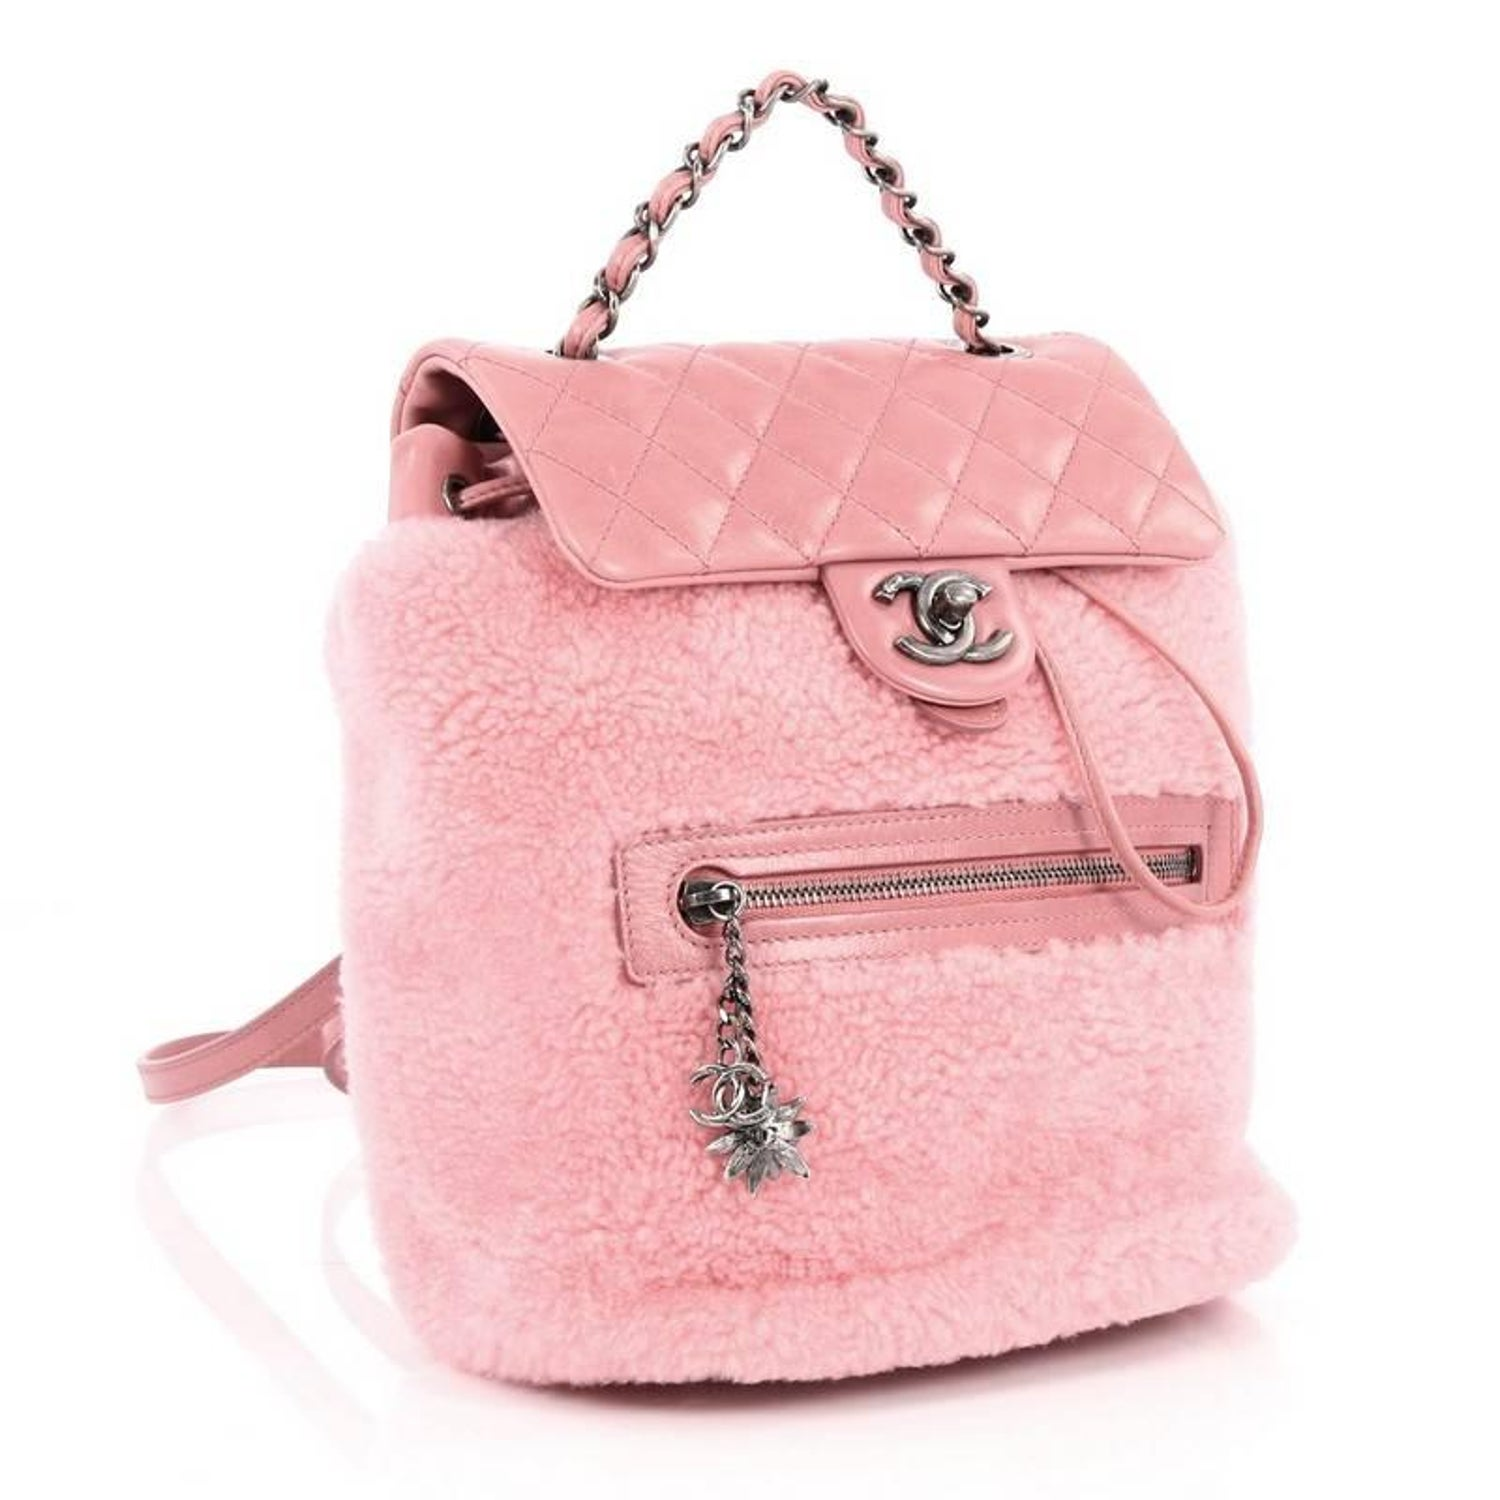 039a79110f95 CHANEL Women Backpacks - Vestiaire Collective